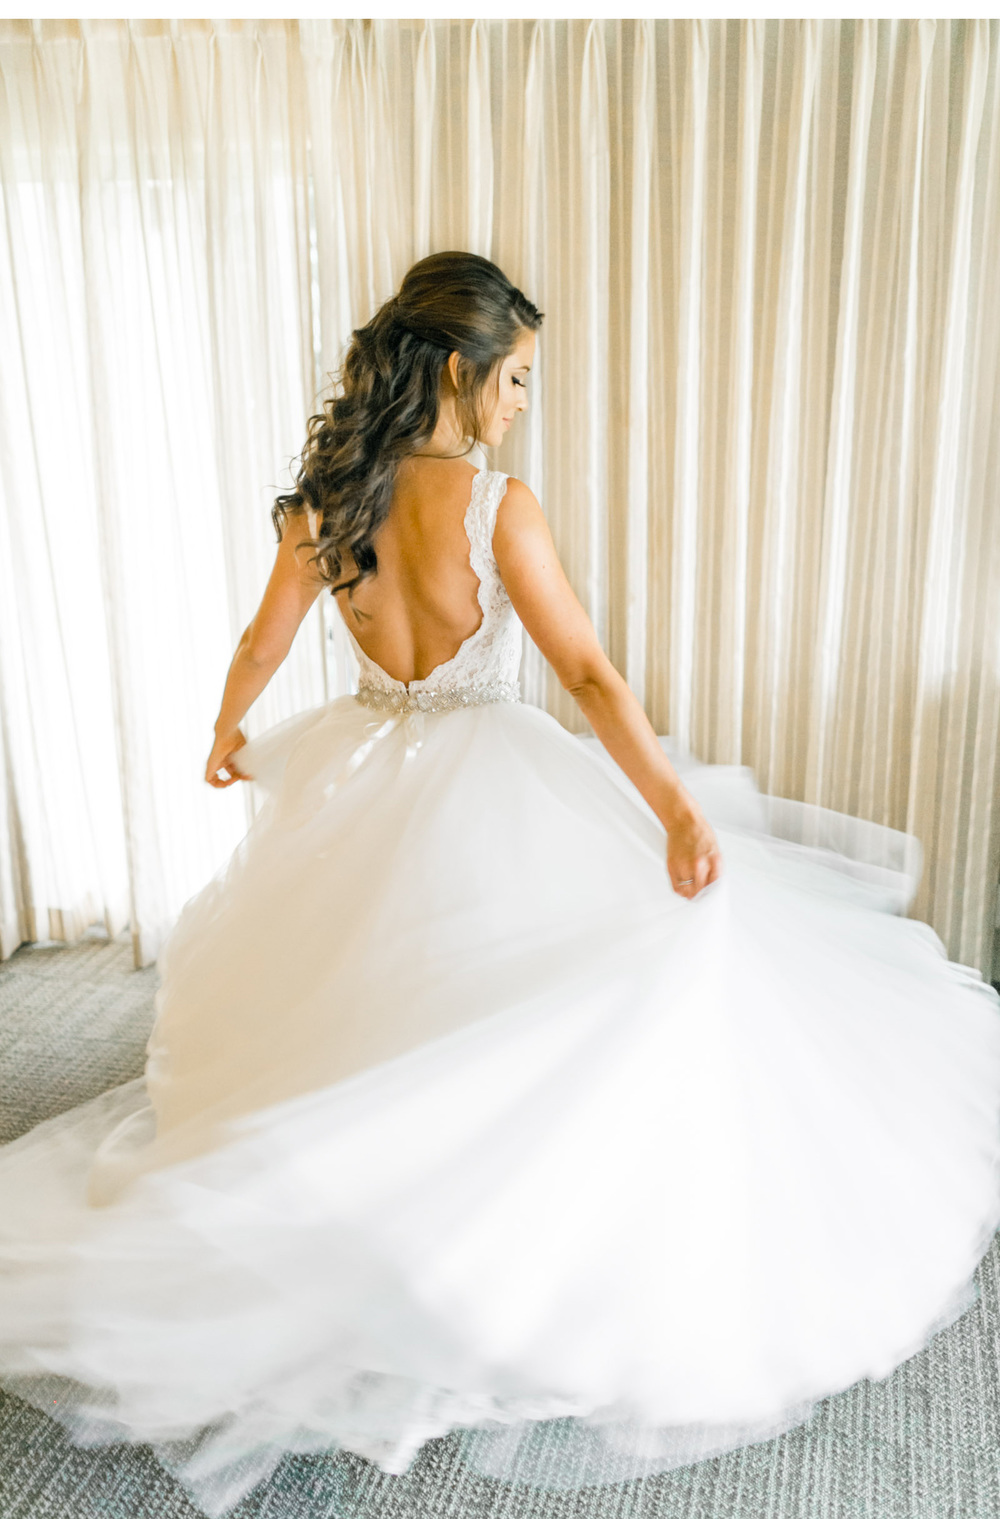 Nia-Sanchez-Wedding-Miss-USA-Natalie-Schutt-Photography_03.jpg